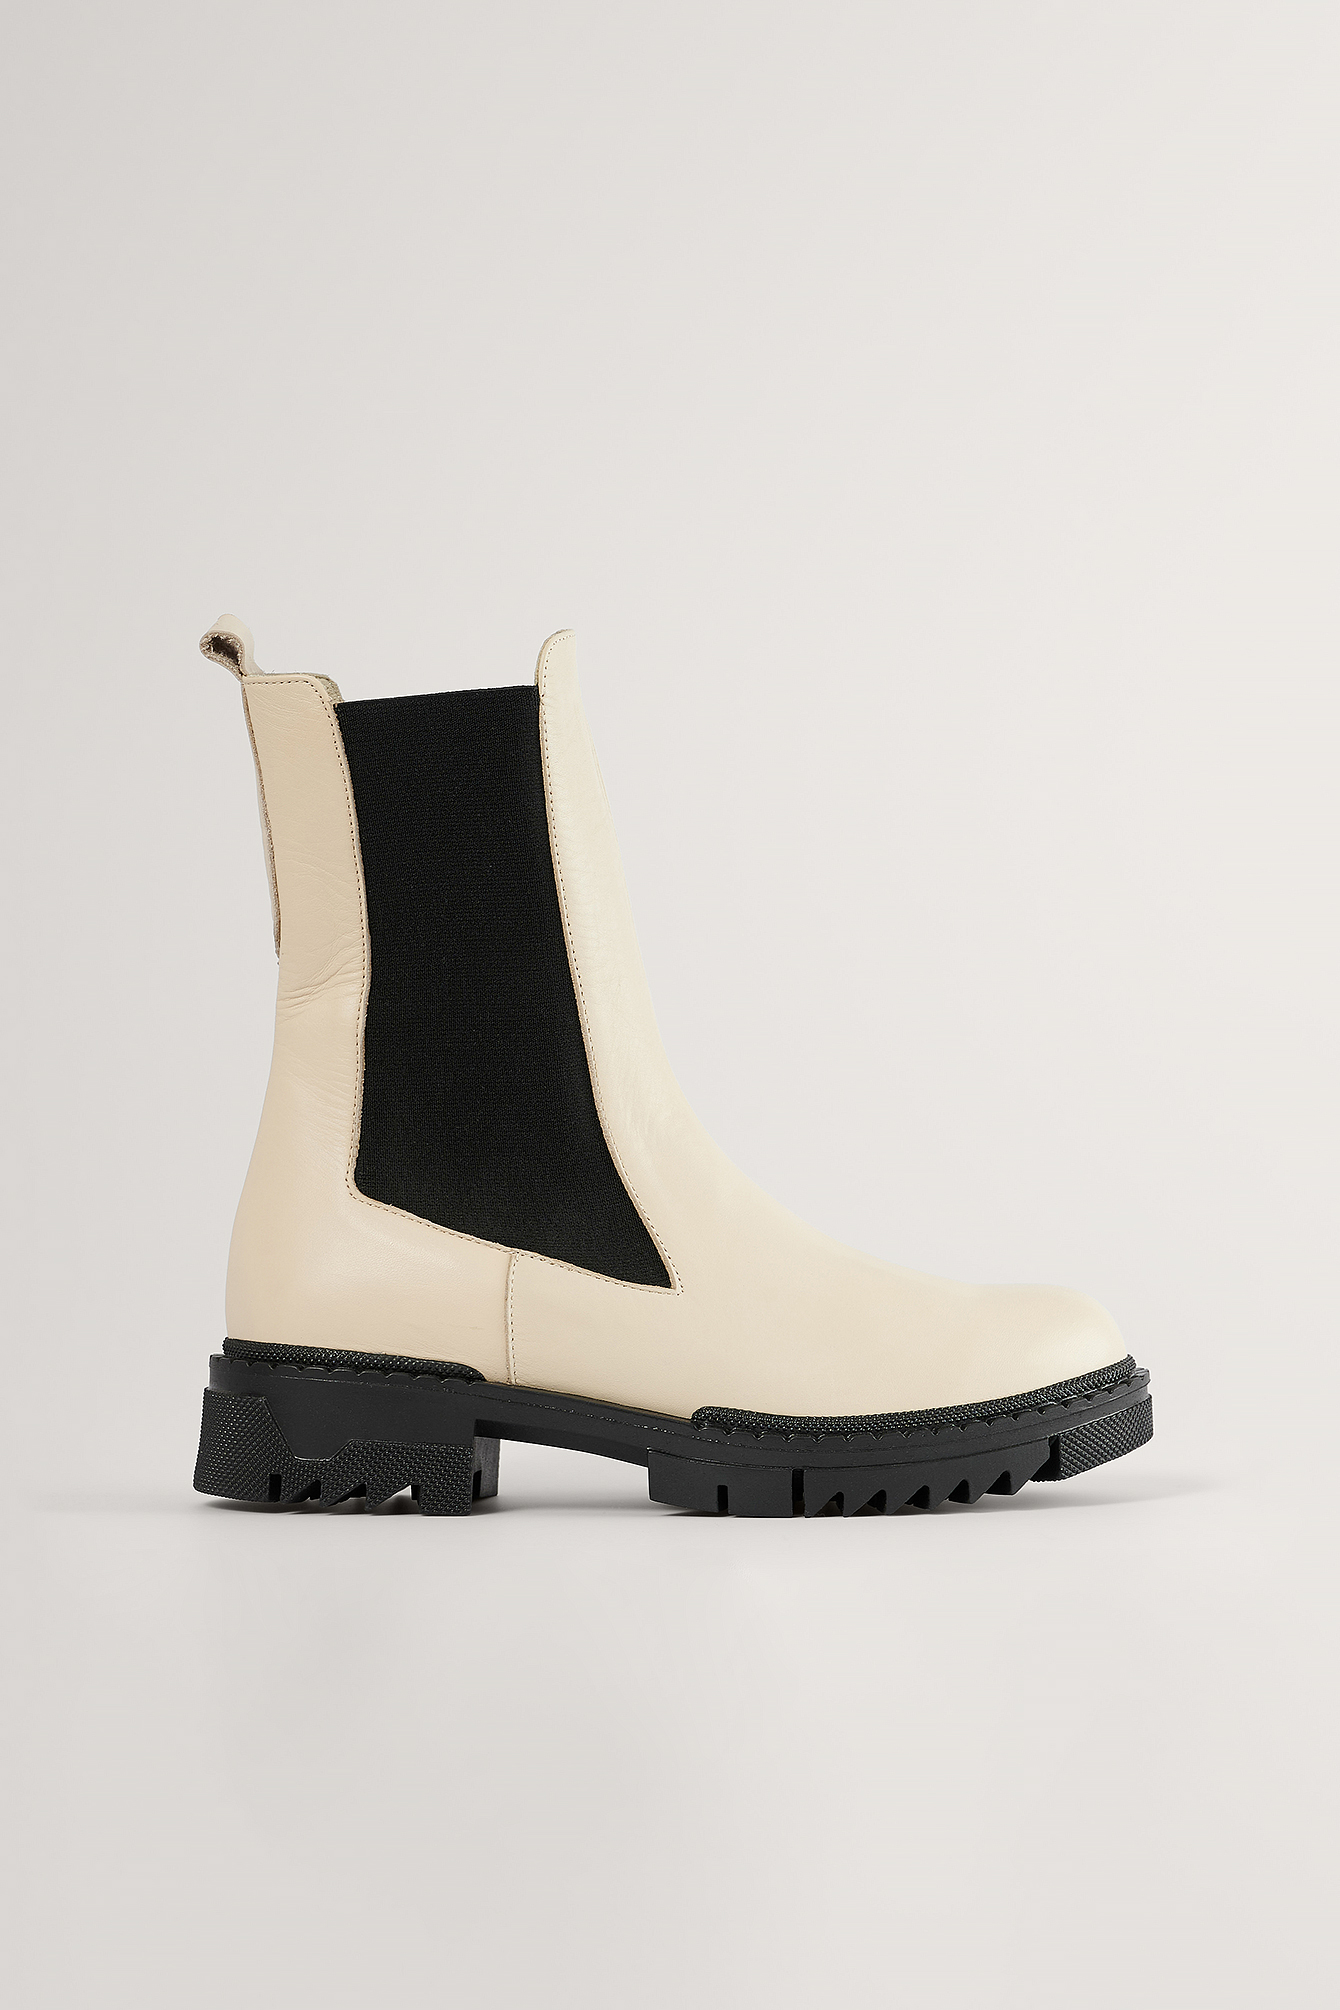 Creme Leather Profile Chelsea Boots